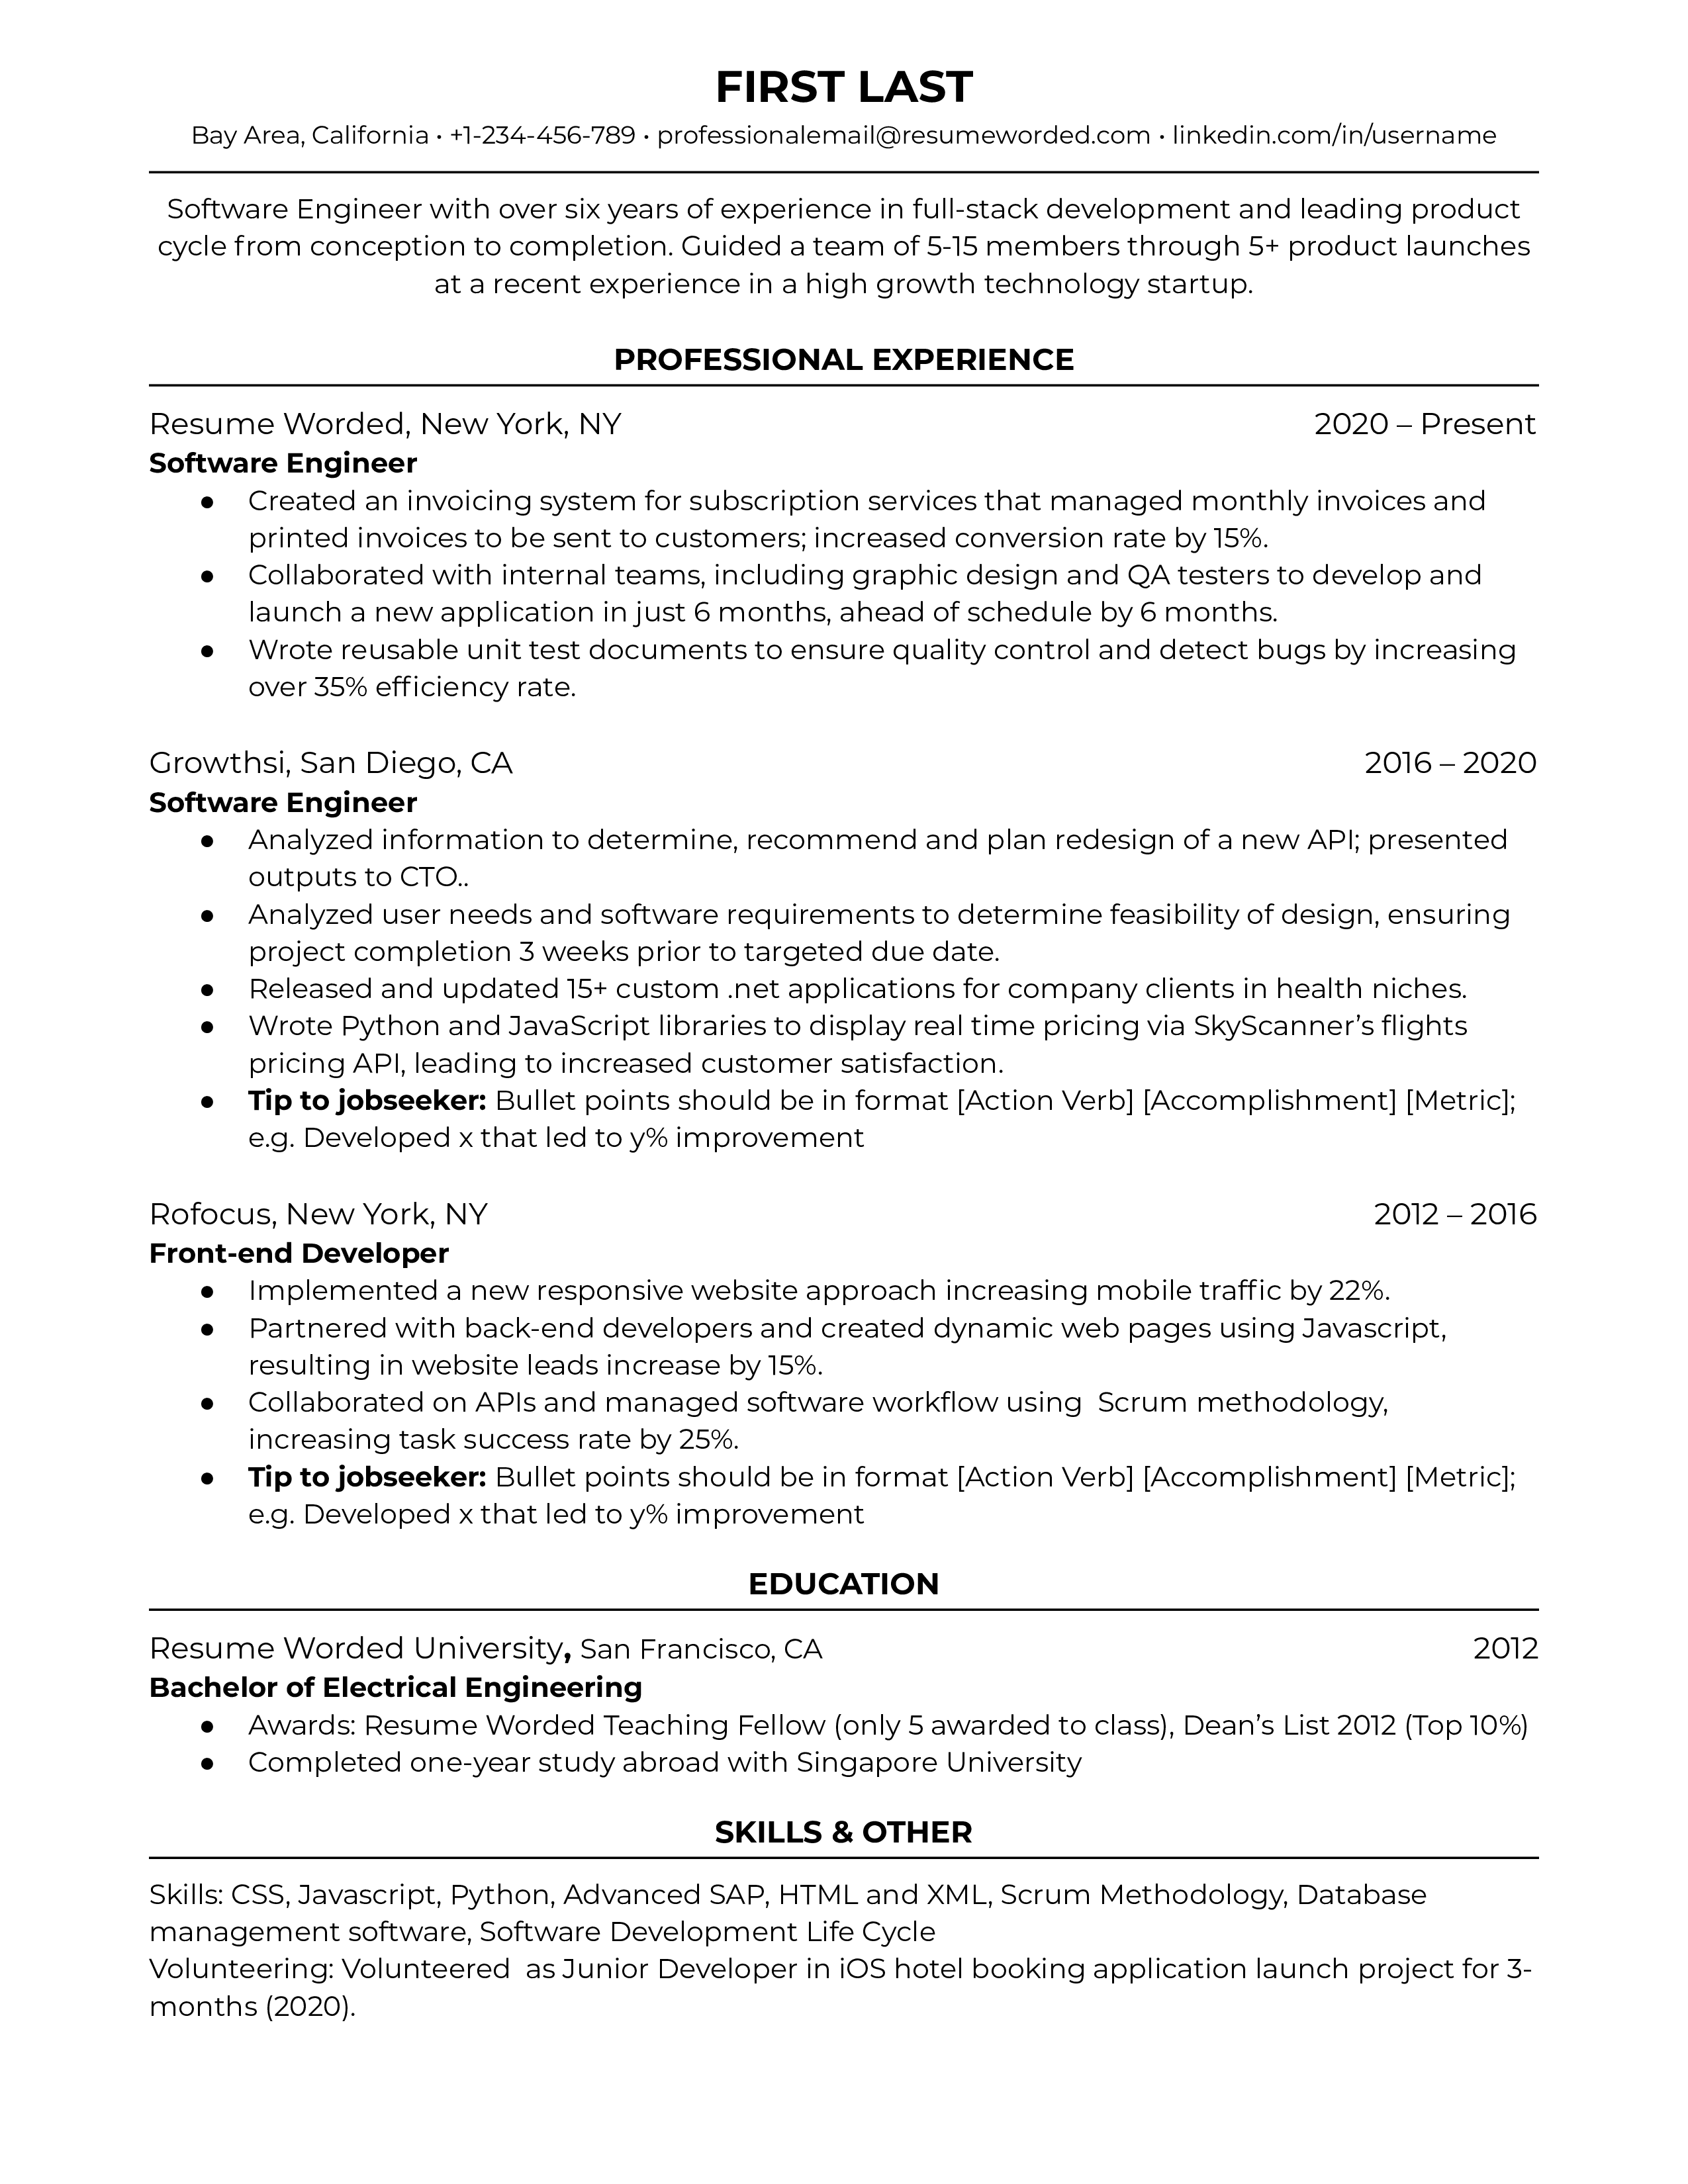 resume format for a software engineer